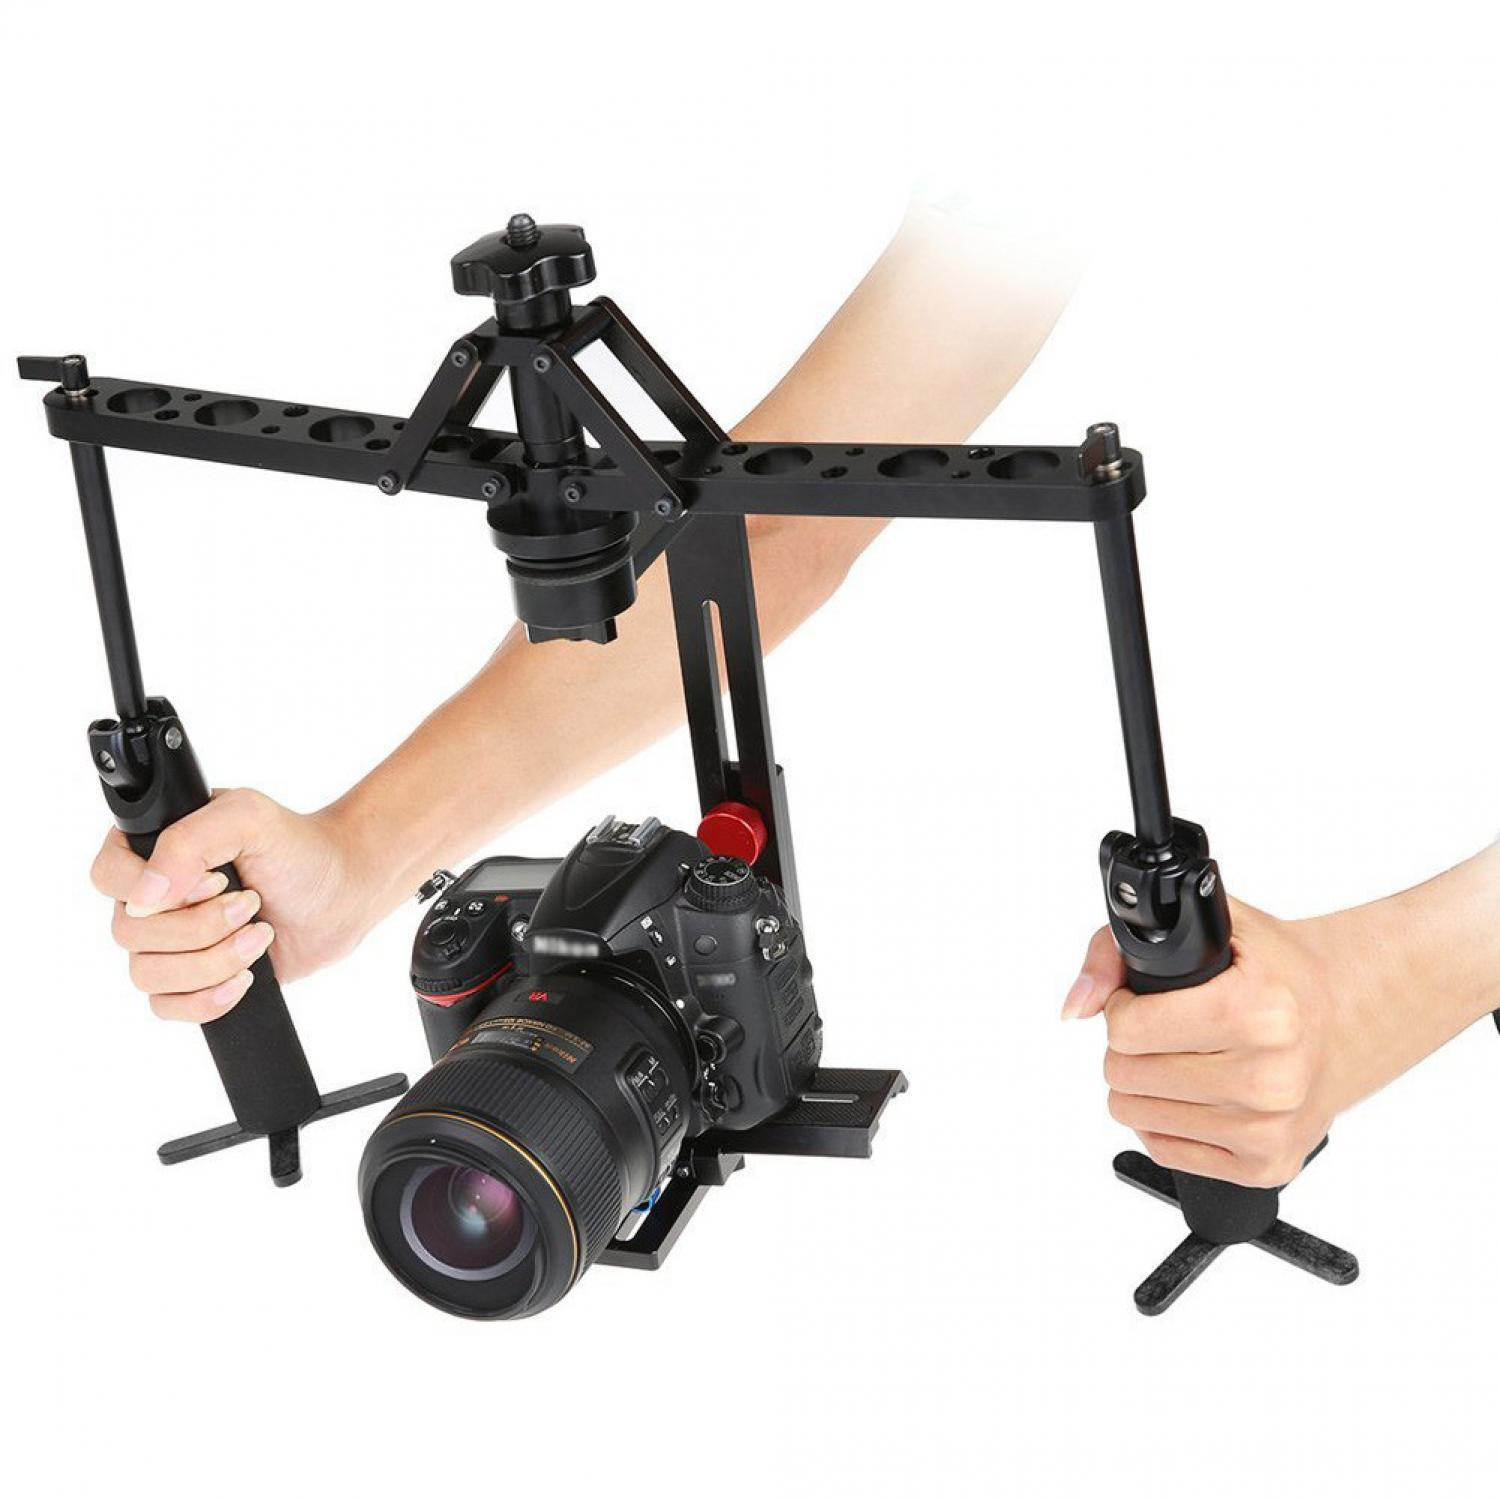 Handheld  Stabilizer  Camera Rig  Gimbal 2 - Axis for DSLR Canon Nikon Sony